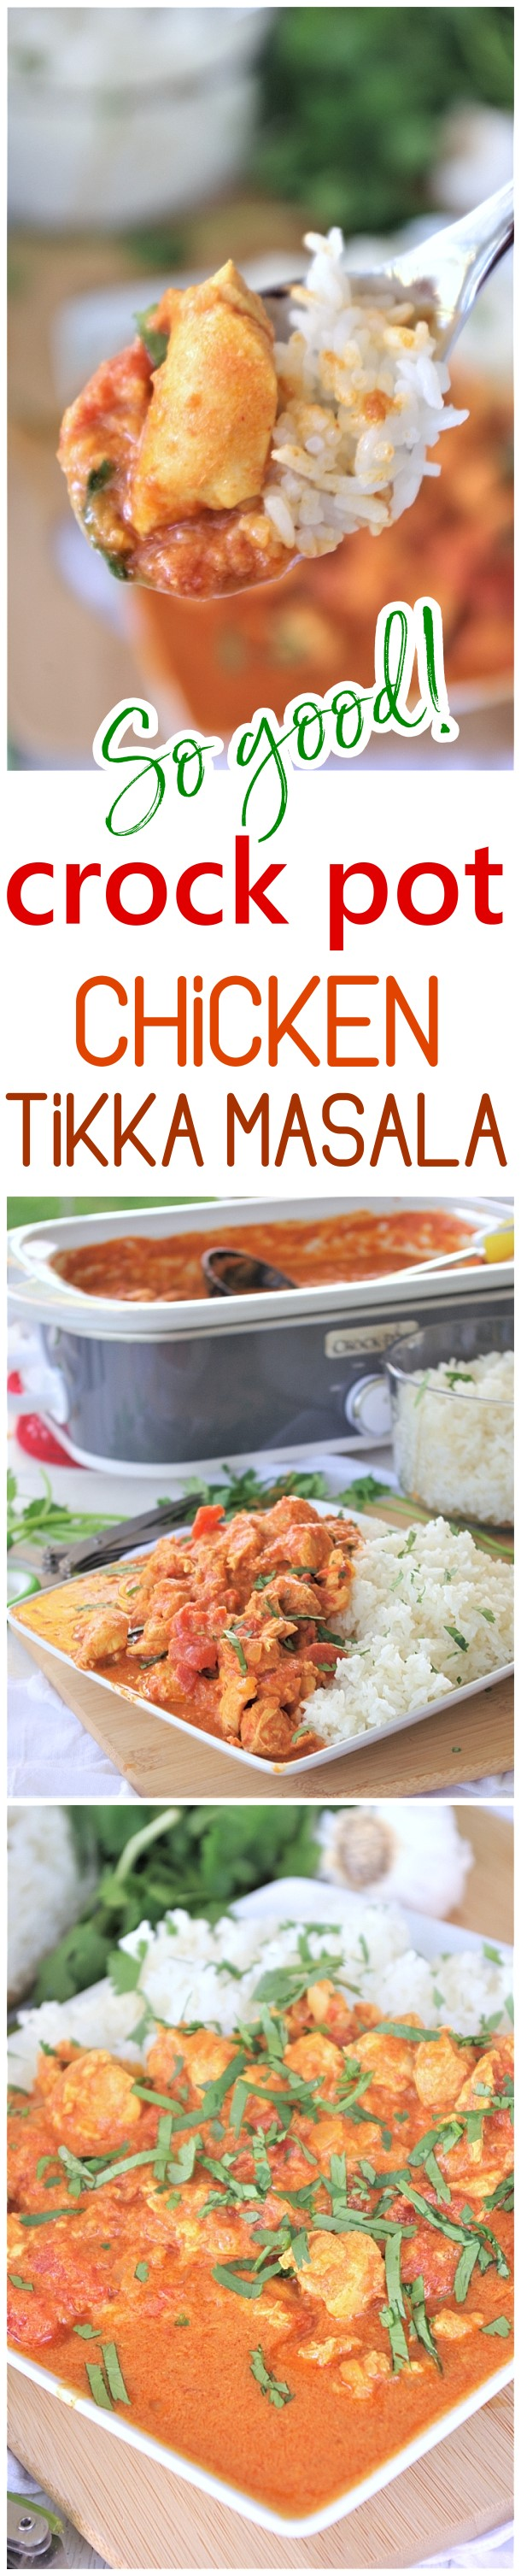 Crock Pot Chicken Tikka Masala Easy Family Supper Recipe by Dreaming in DIY - This easy family style slow cooker recipe for chicken tikka masala is going to become your new go-to and standby supper for busy weeknights and lazy weekends.  It's just so buttery and full of melt in your mouth Indian inspired deliciousness. via Dreaming in DIY #crockpottikkamasala #tikkamasala #tikkamisalarecipe #chickenrecipes #slowcookertikkamasala #slowcookerrecipes #simplerecipes #simplefamilymeals #simplefamilyrecipes